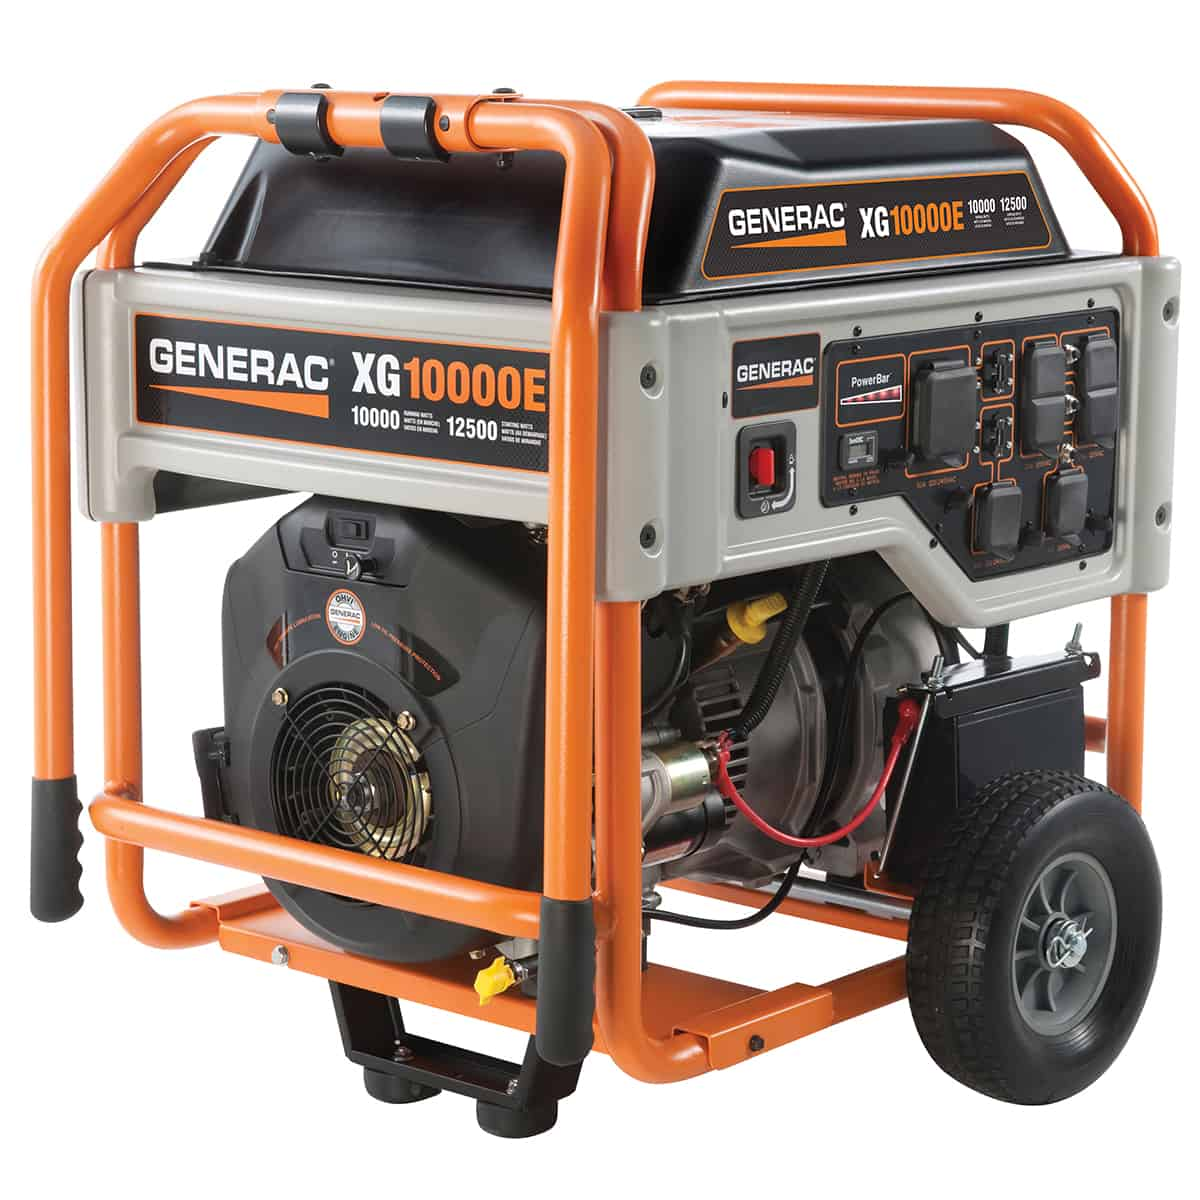 Generac Portable XG Series XG10000E Electric Start